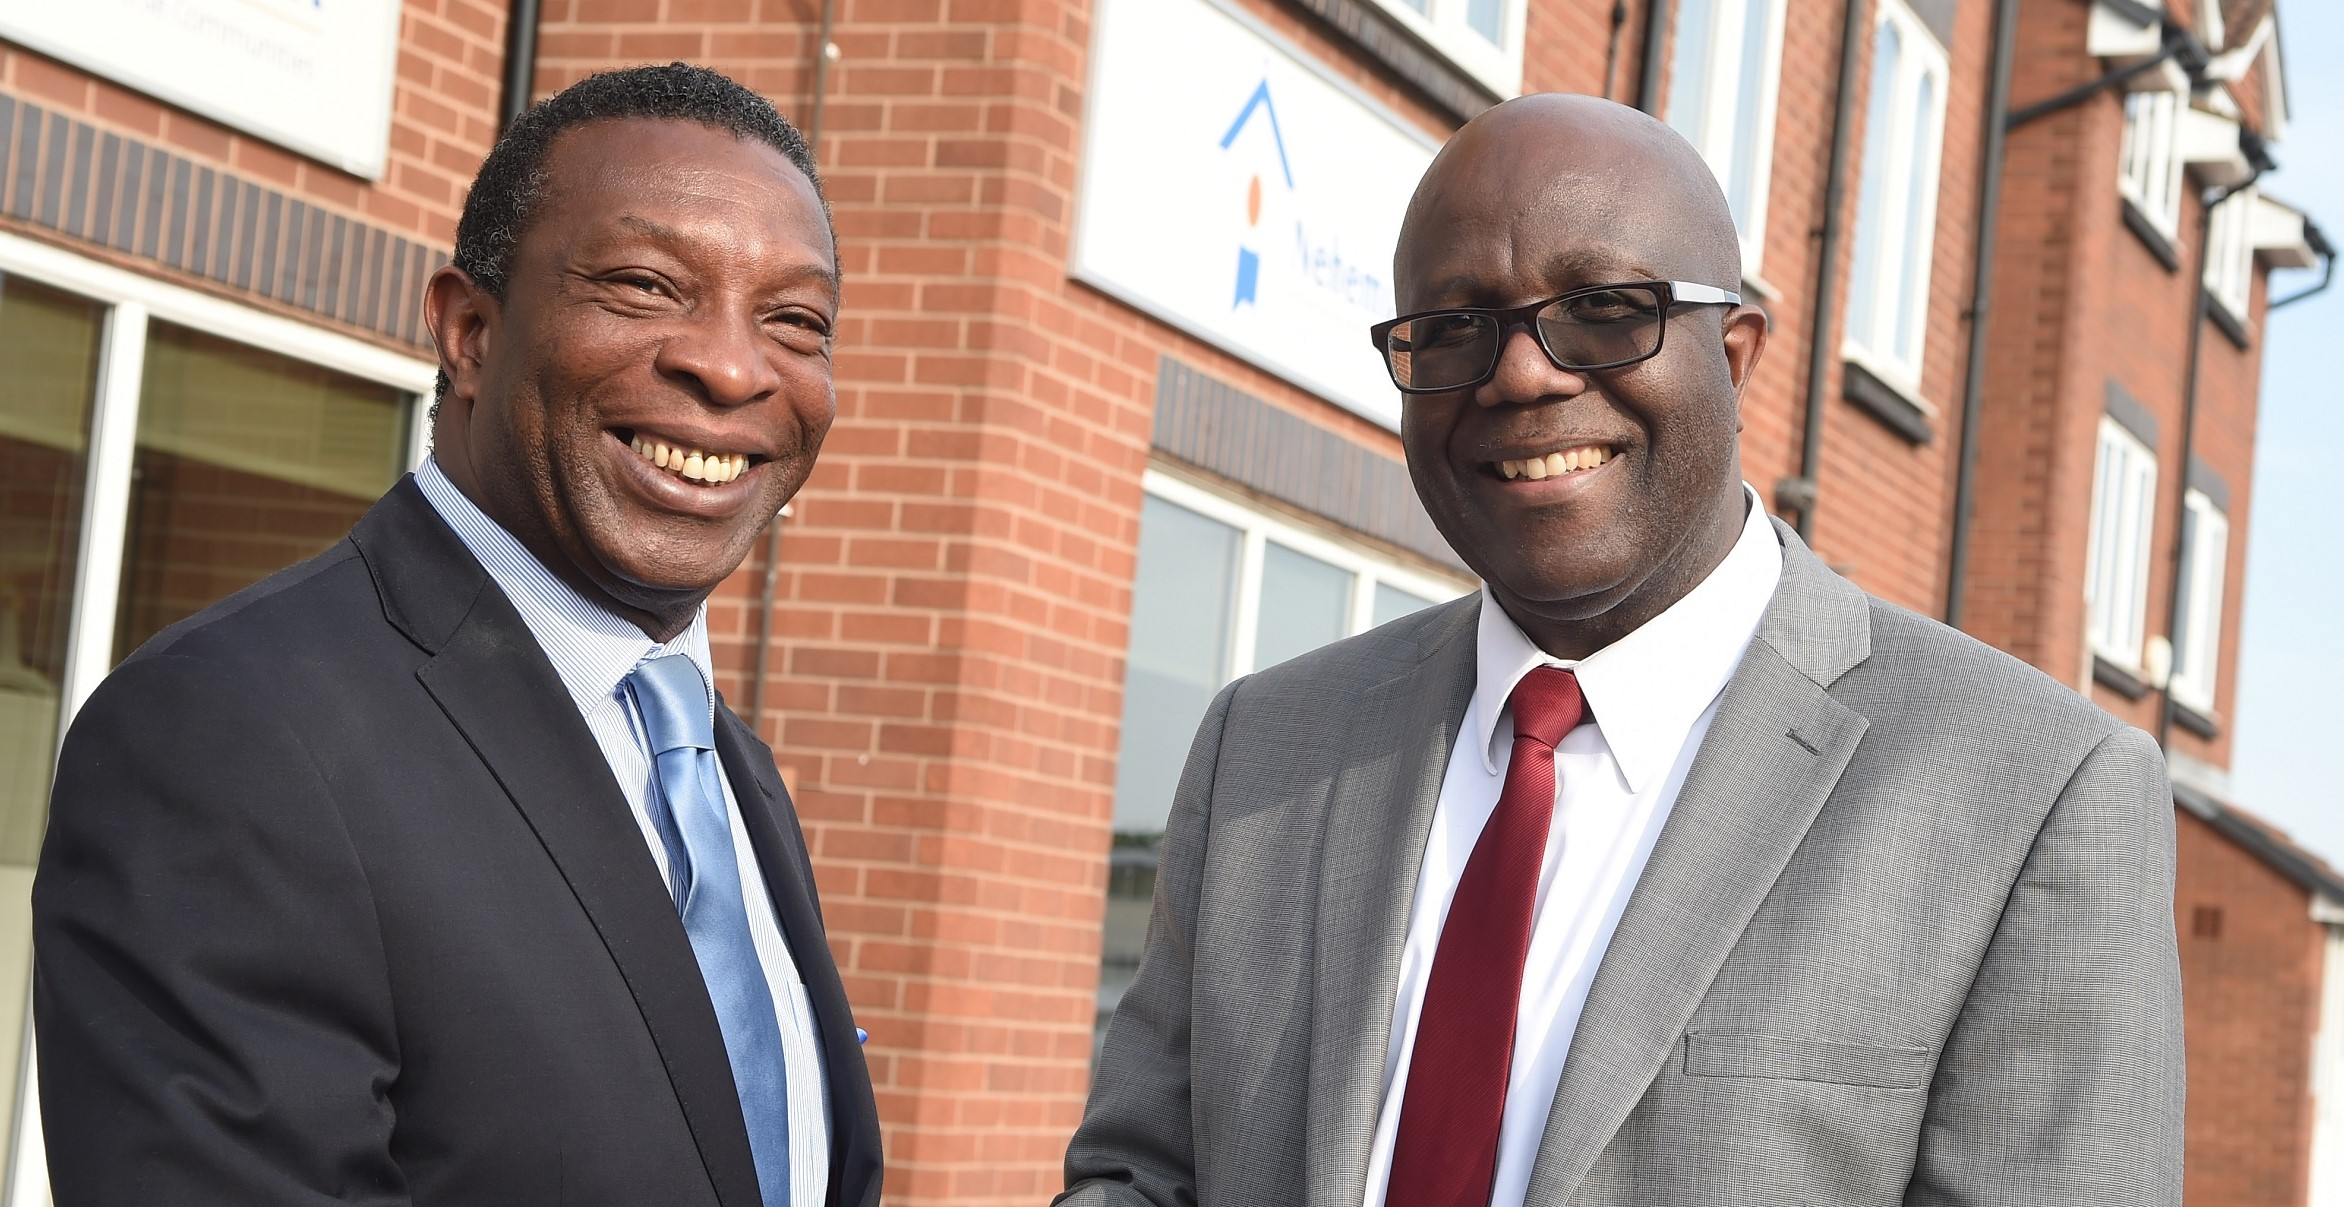 Vice Chair of Nehemiah Housing appointed as Independent Person to advise on the Windrush Scheme